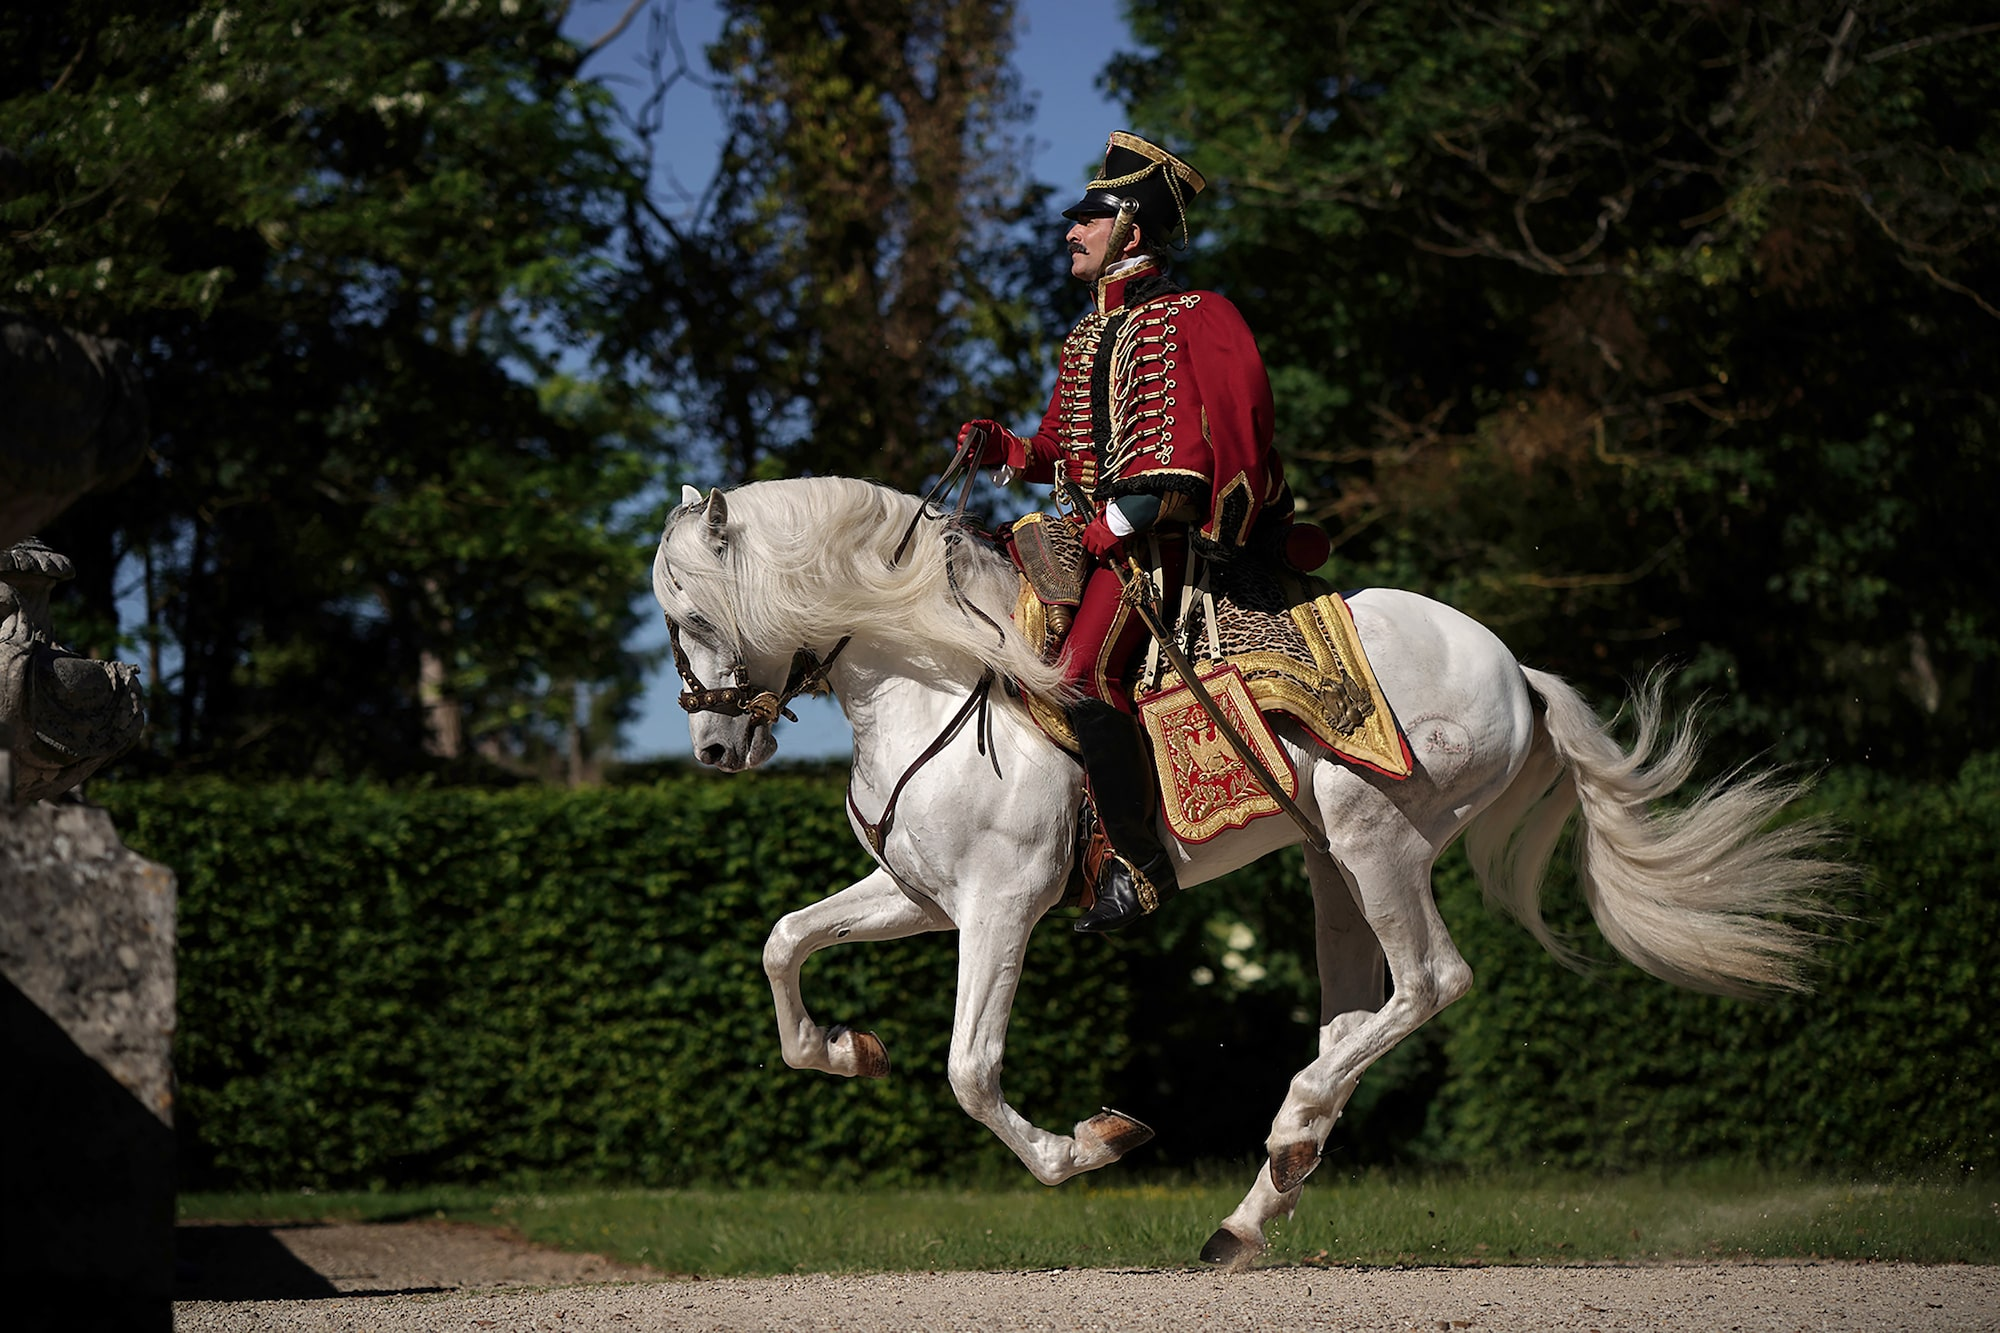 Christophe-Brachet-Sony-Alpha-9-jean-dujardin-galloping-on-horseback dressed in period costume